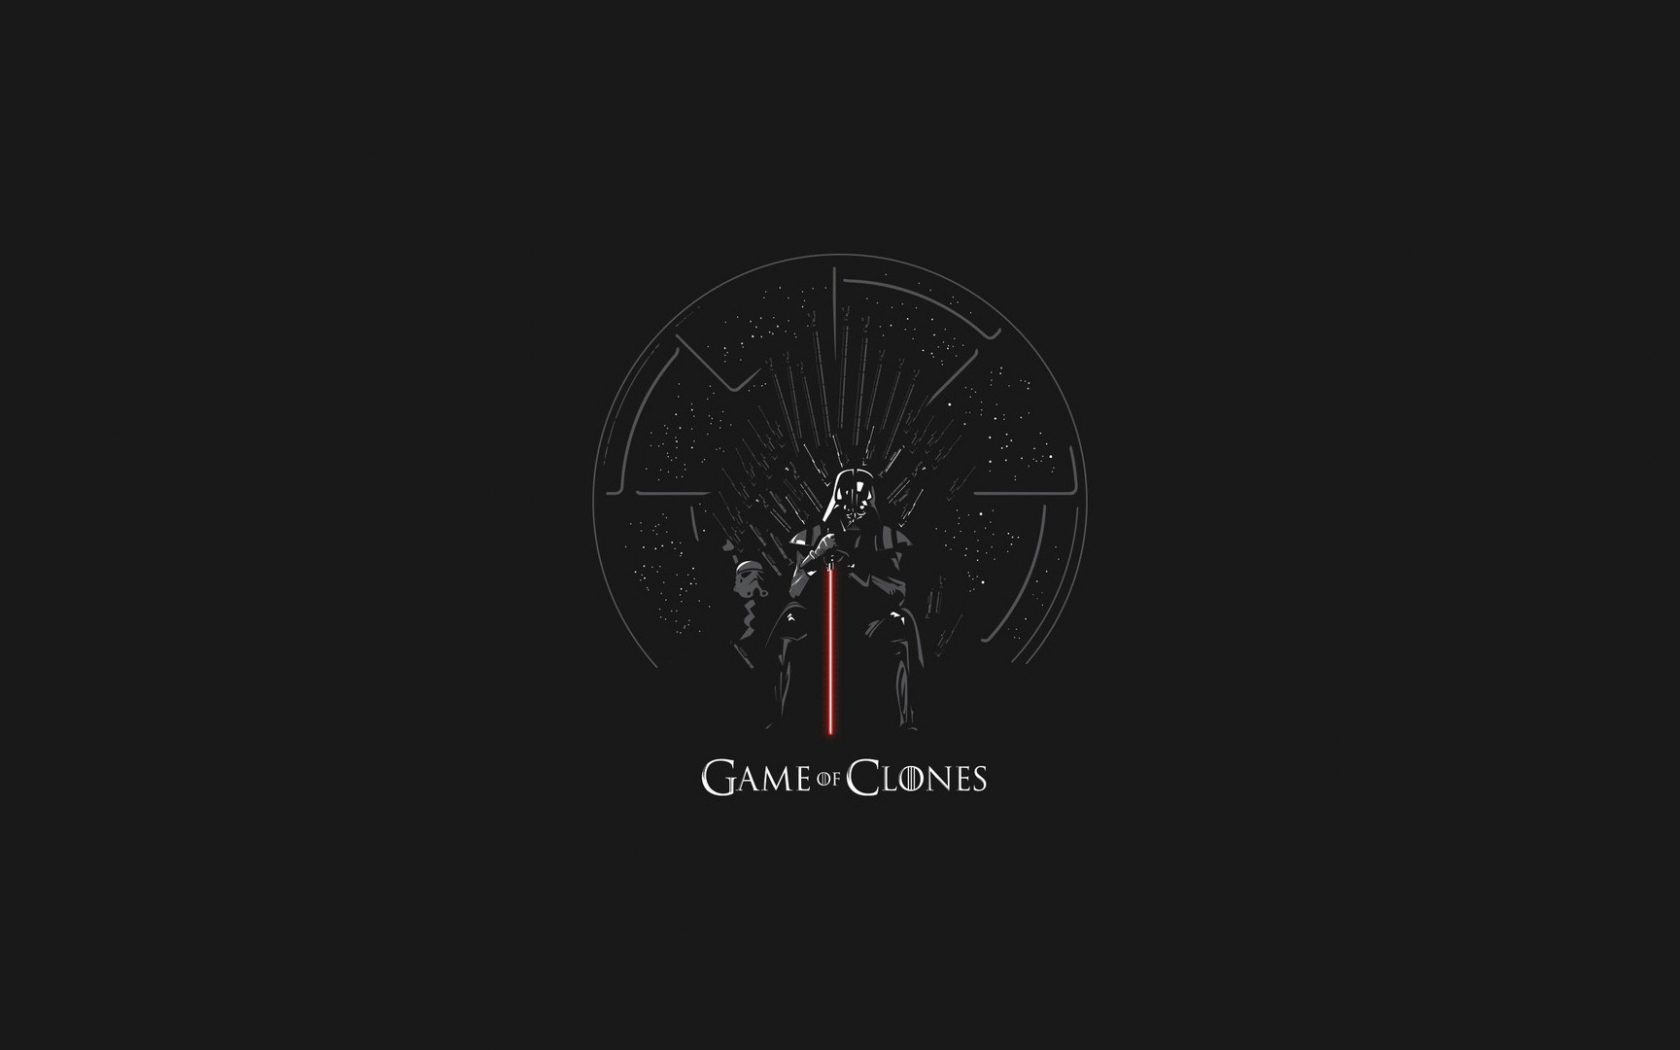 Free Download Game Of Thrones Star Wars Wallpapers Mash Up Simple